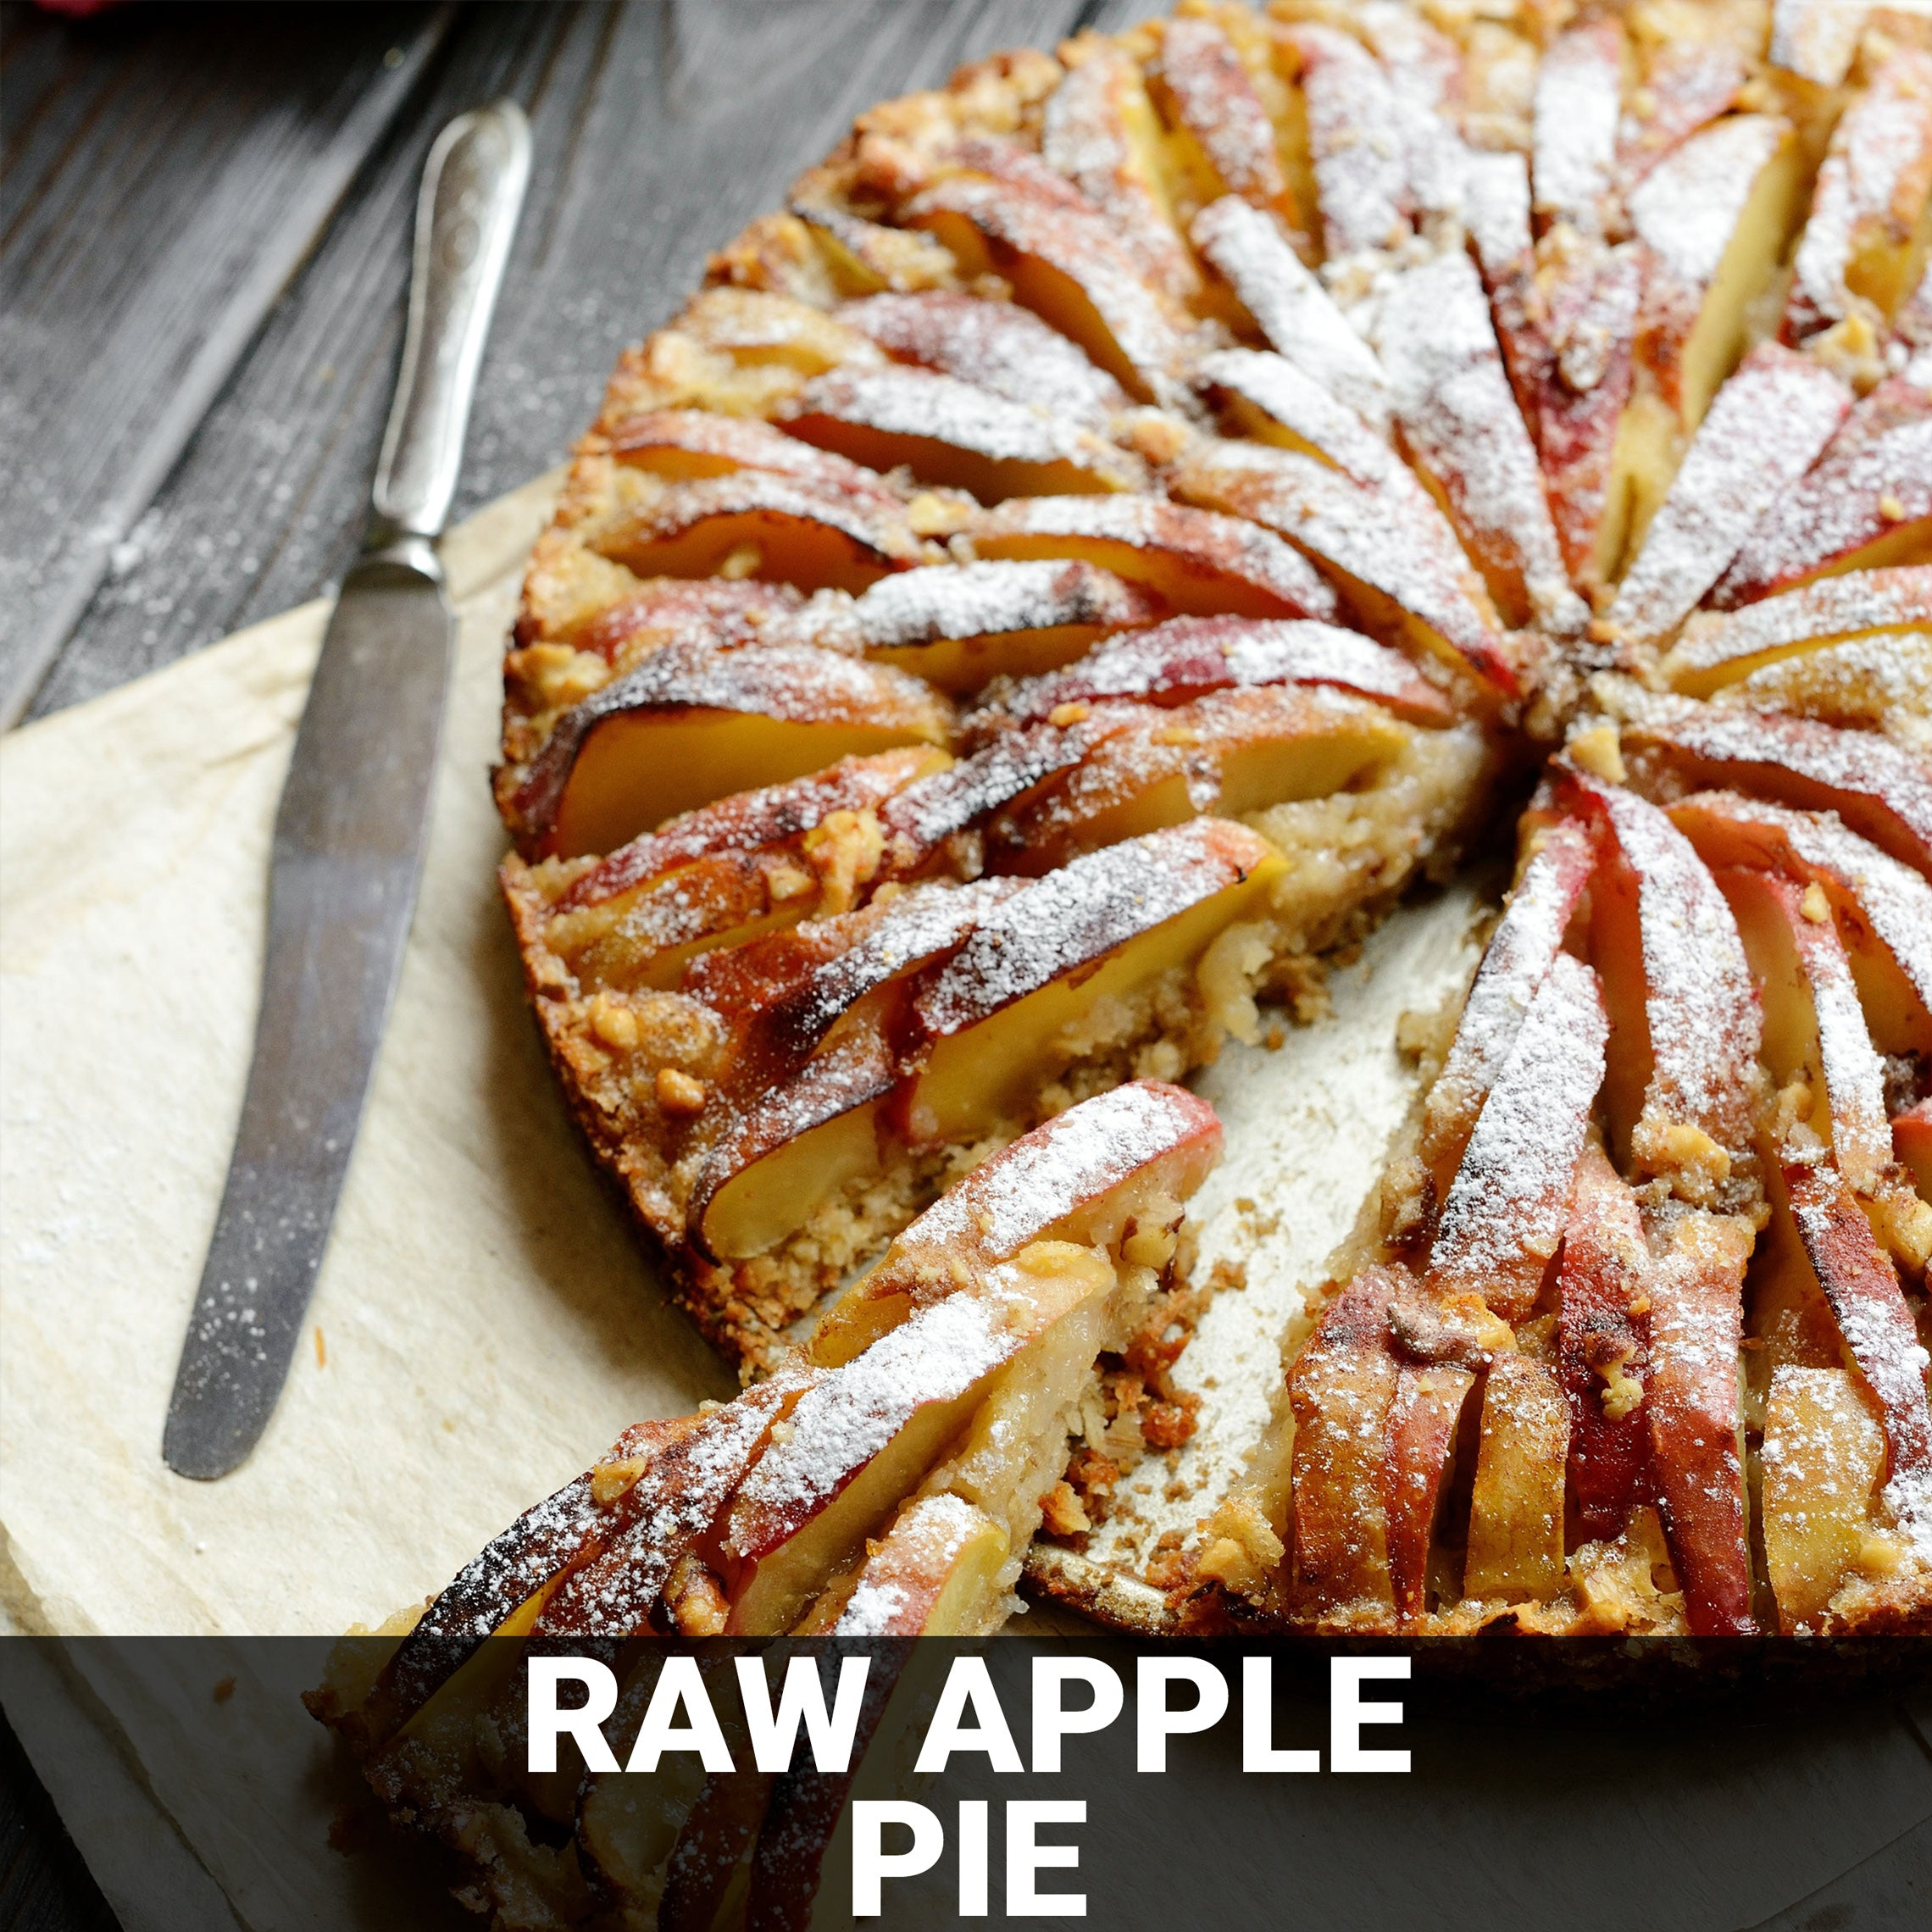 Raw Apple Pie Recipe - Foods Alive